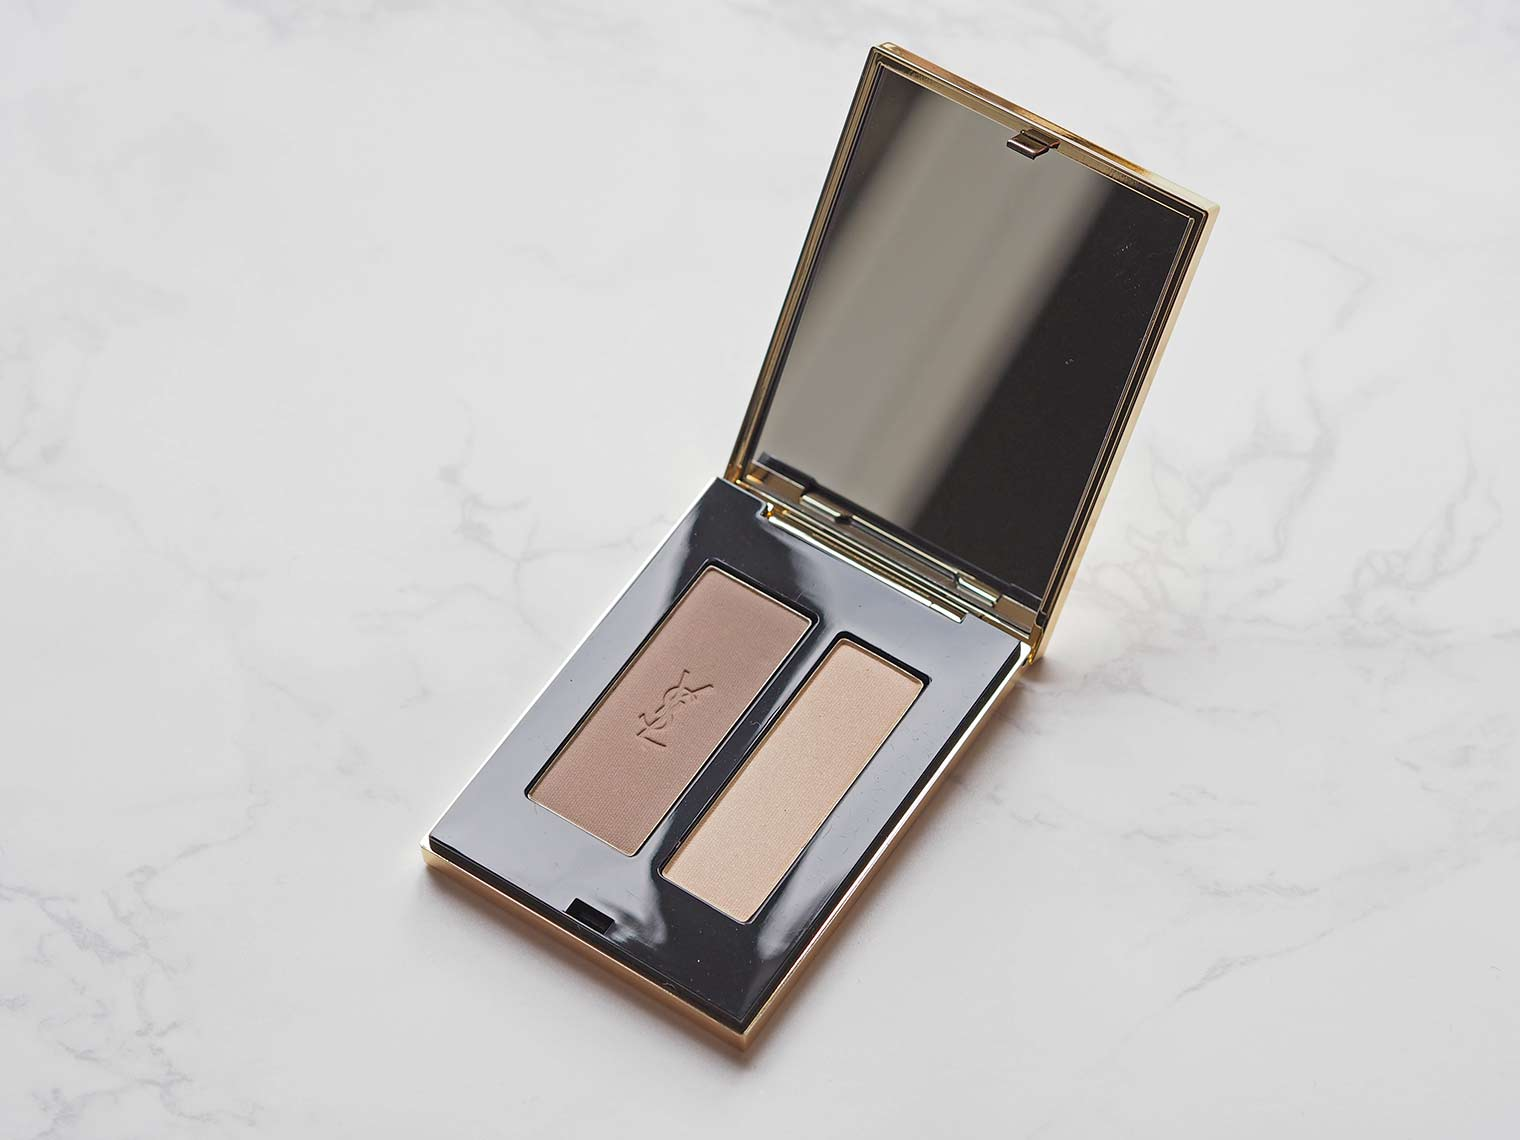 YSL makeup product Couture Contouring No 1